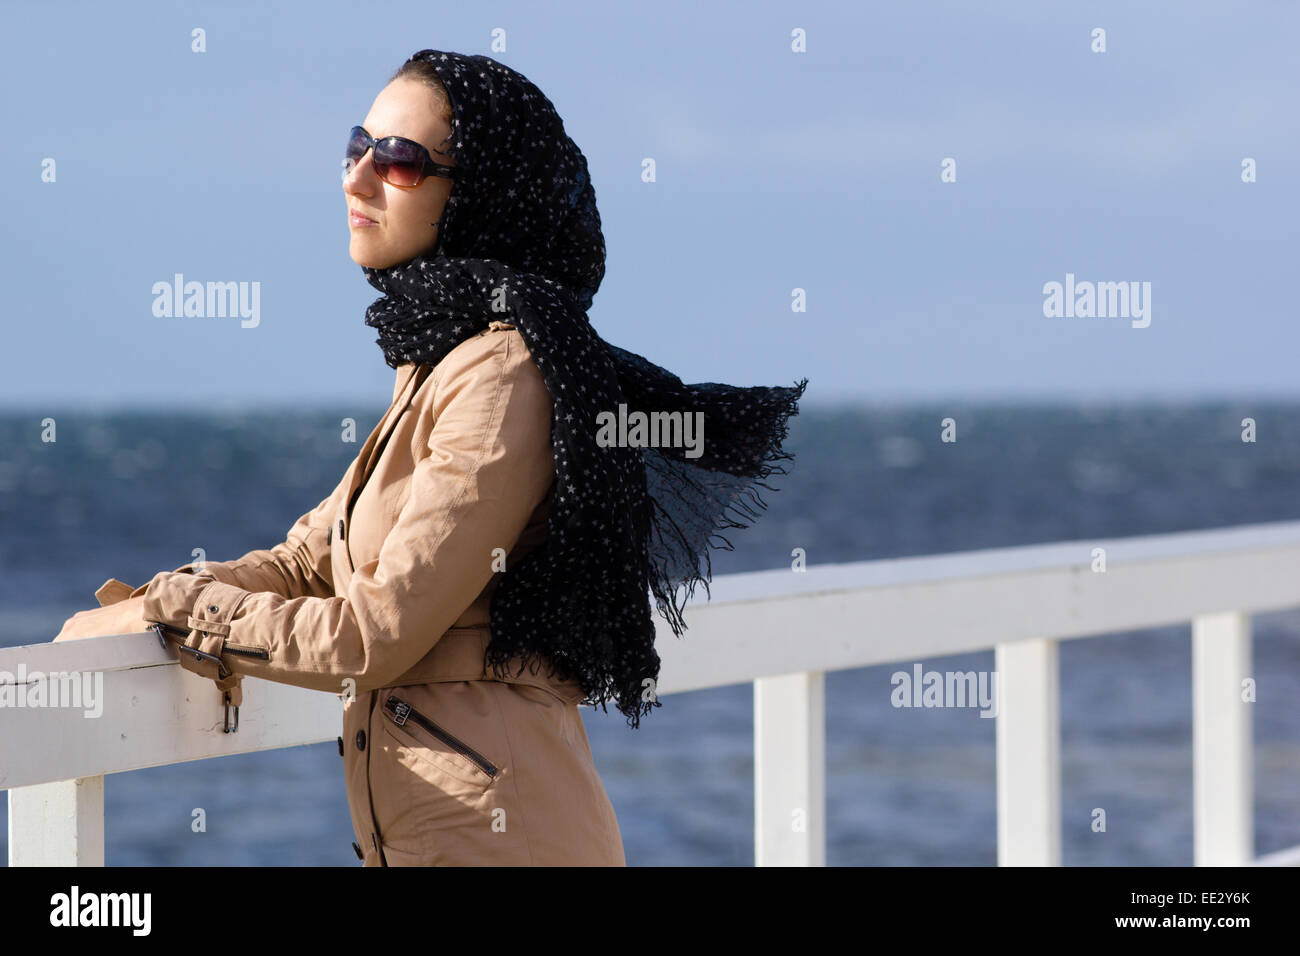 A woman on a pier in Malmo in Sweden. - Stock Image